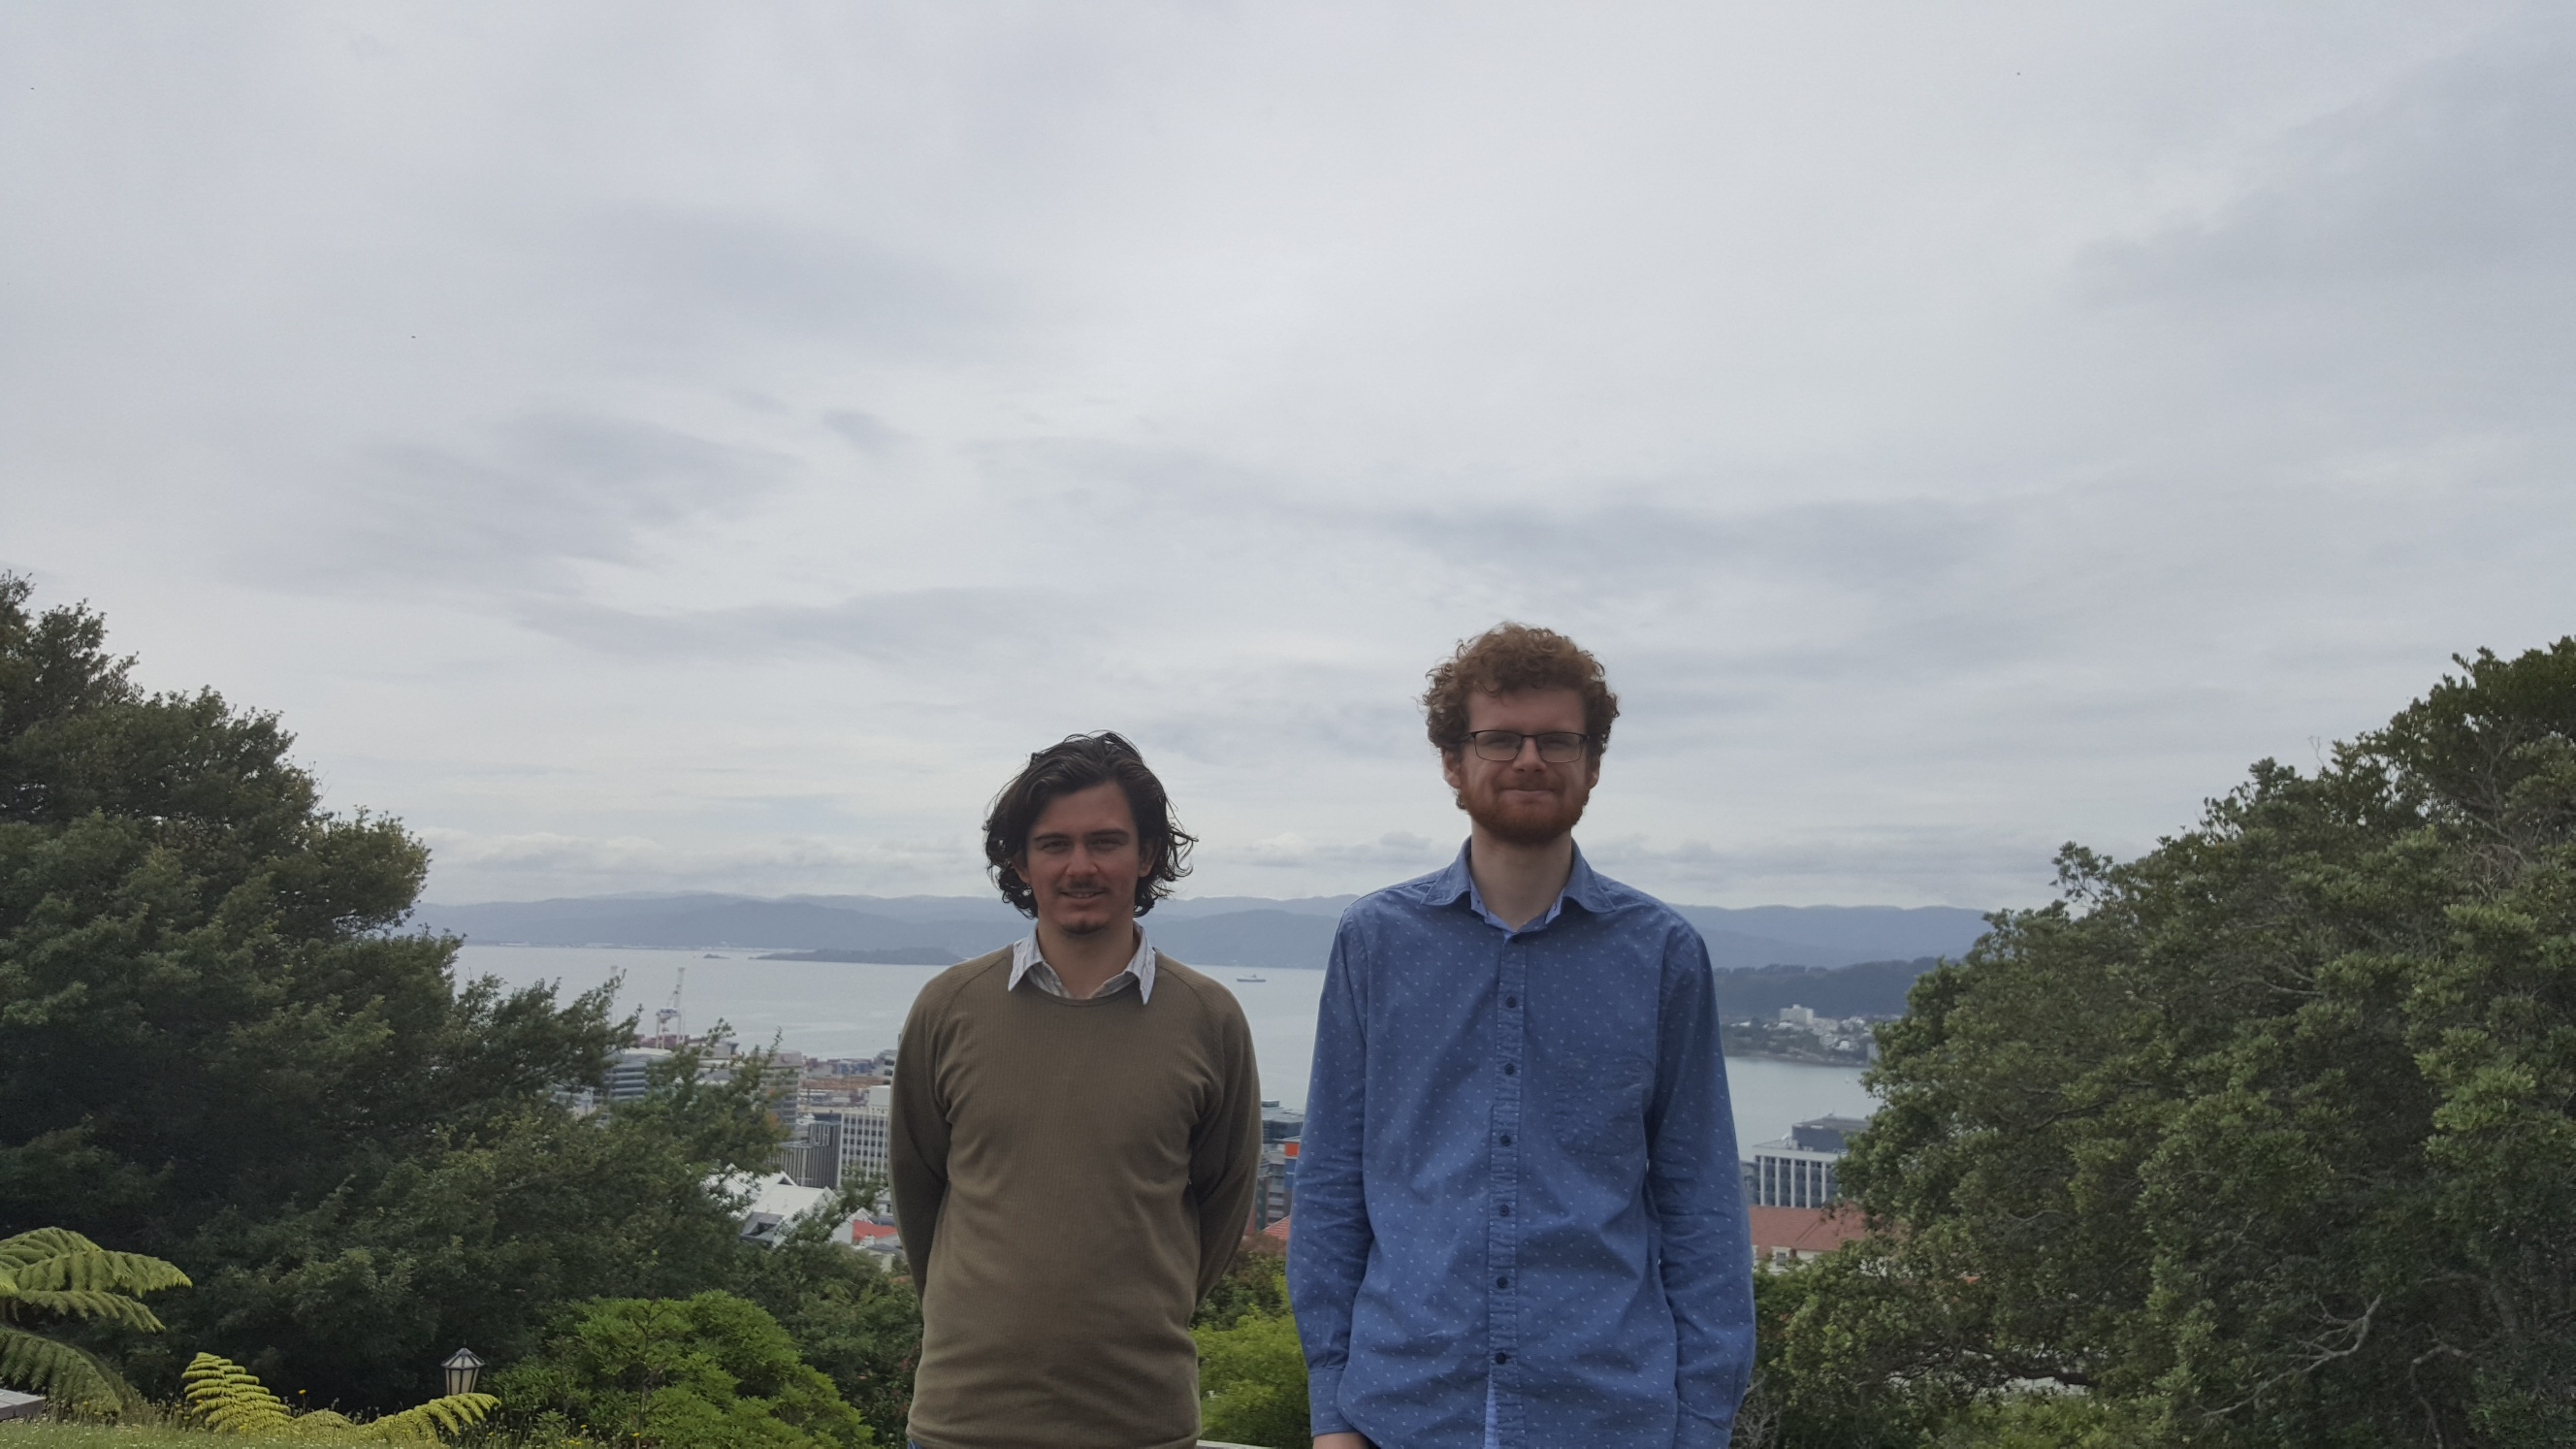 Logan & Rodney; our Summer of Tech interns in the Wellington Botanical Gardens